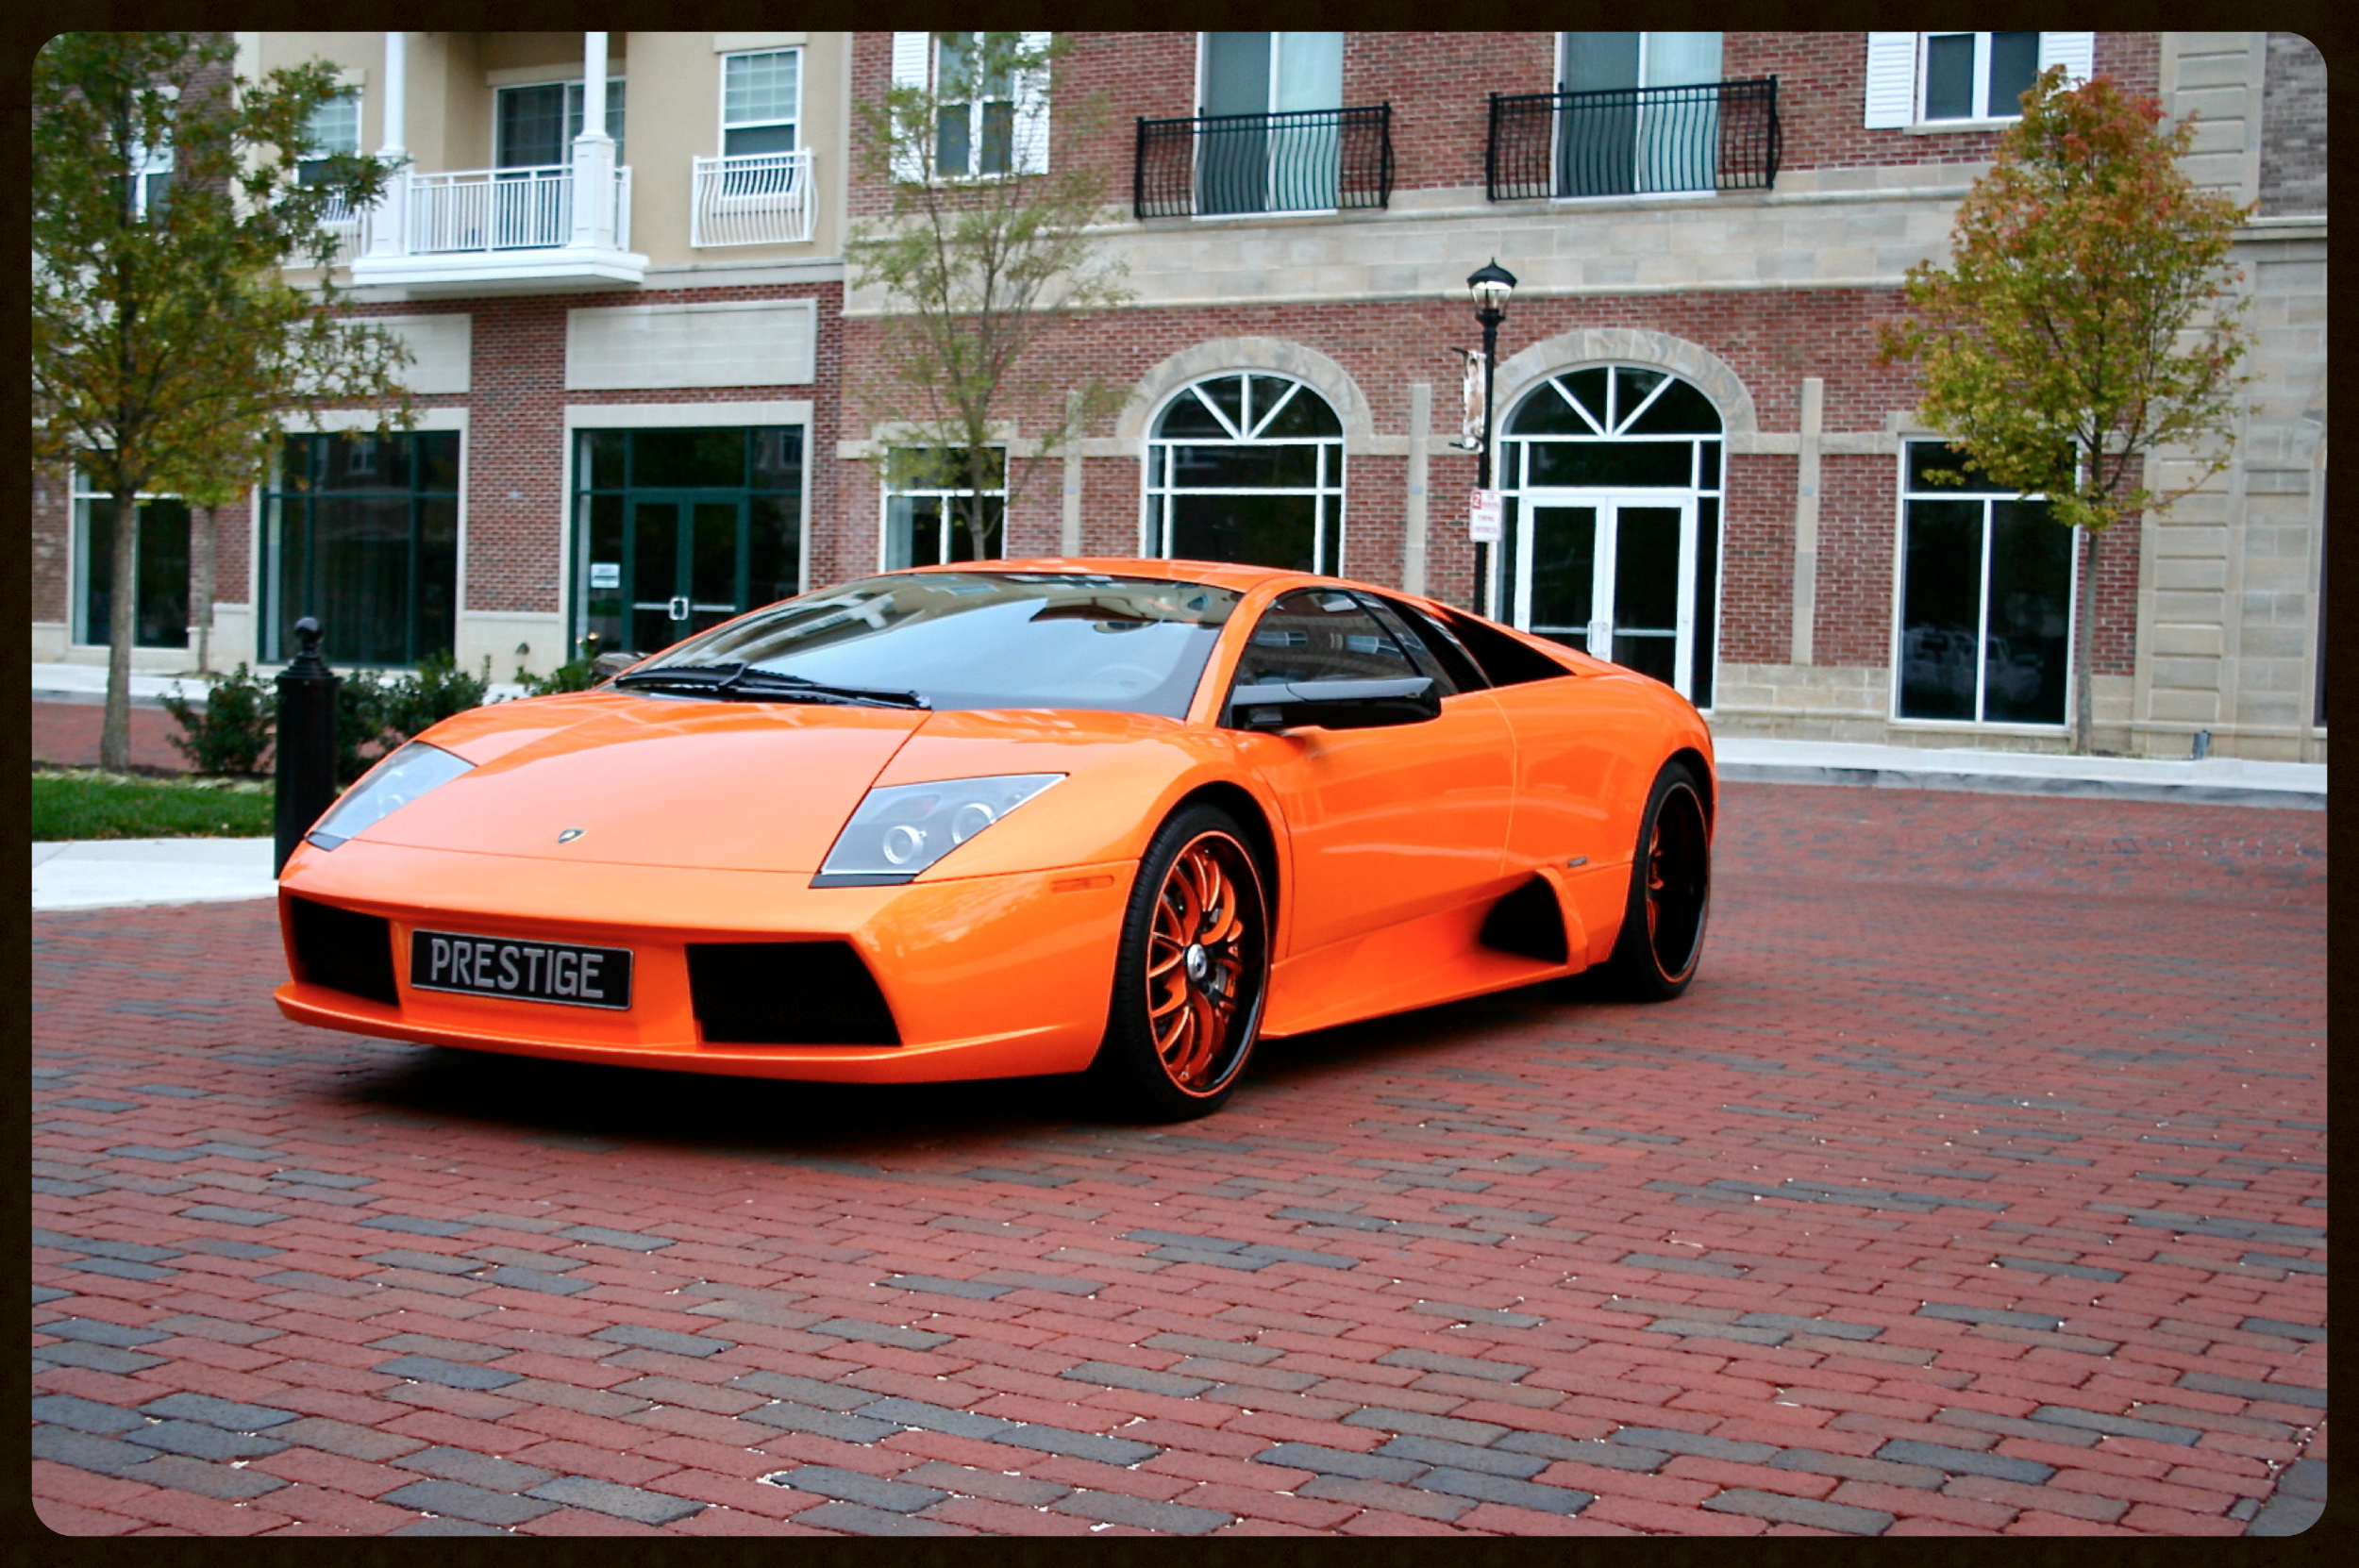 Lamborghini Murcielago LP640...HRE Wheels...Custom Exhaust...6k Miles. Extremely Rare Pearl Orange Finish with Black and Orange Interior. Click to View